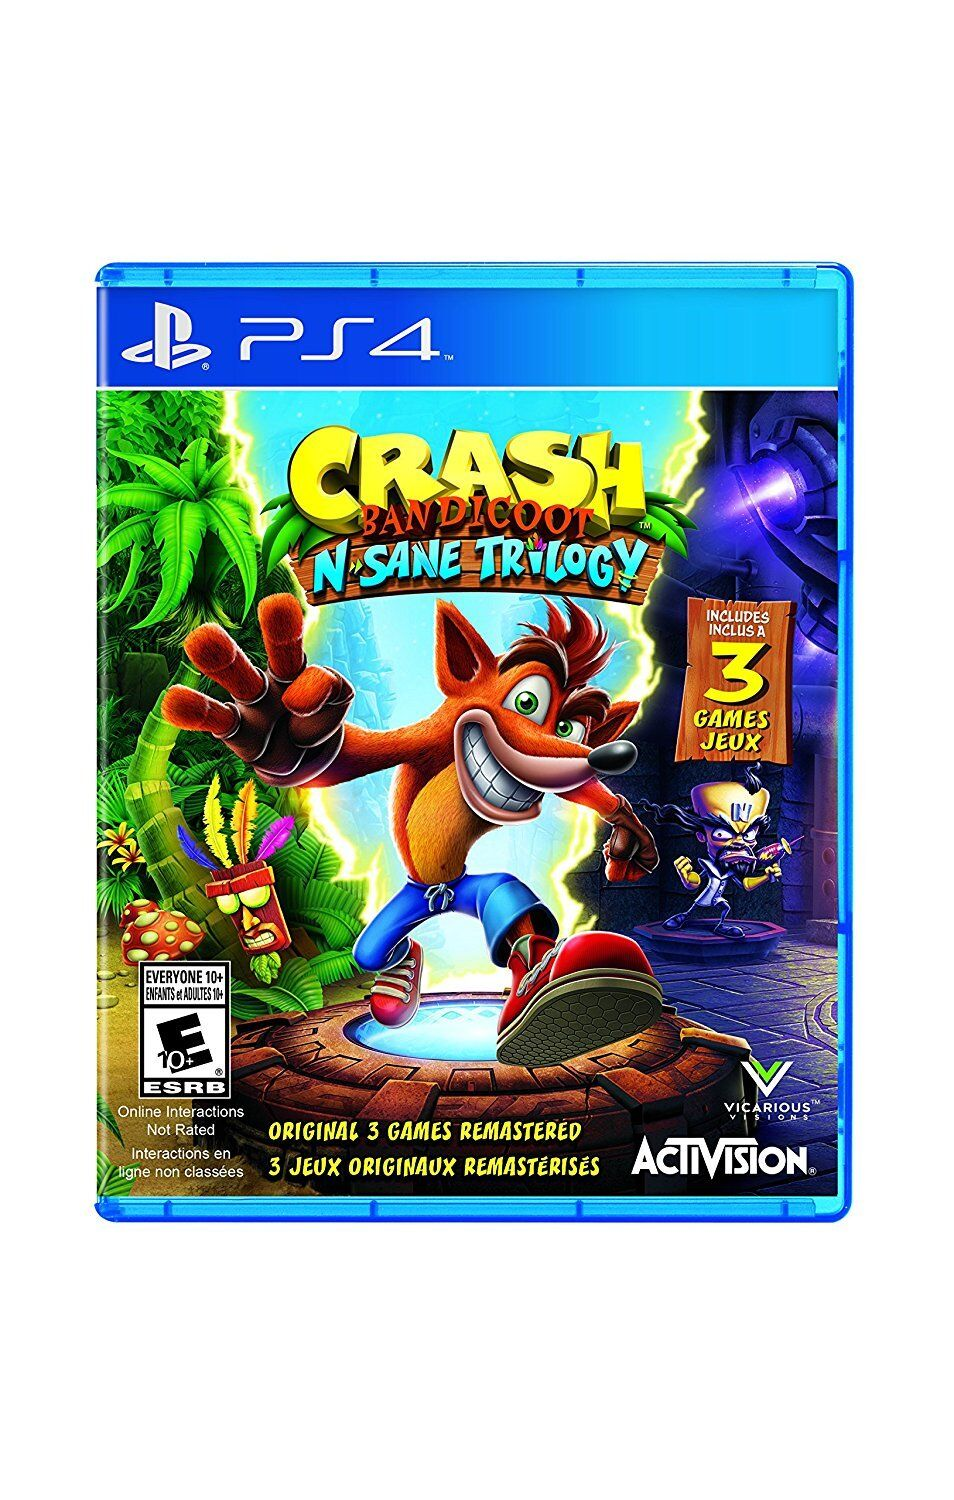 Crash Bandicoot N. Sane Trilogy [playstation 4 Ps4, Activ...